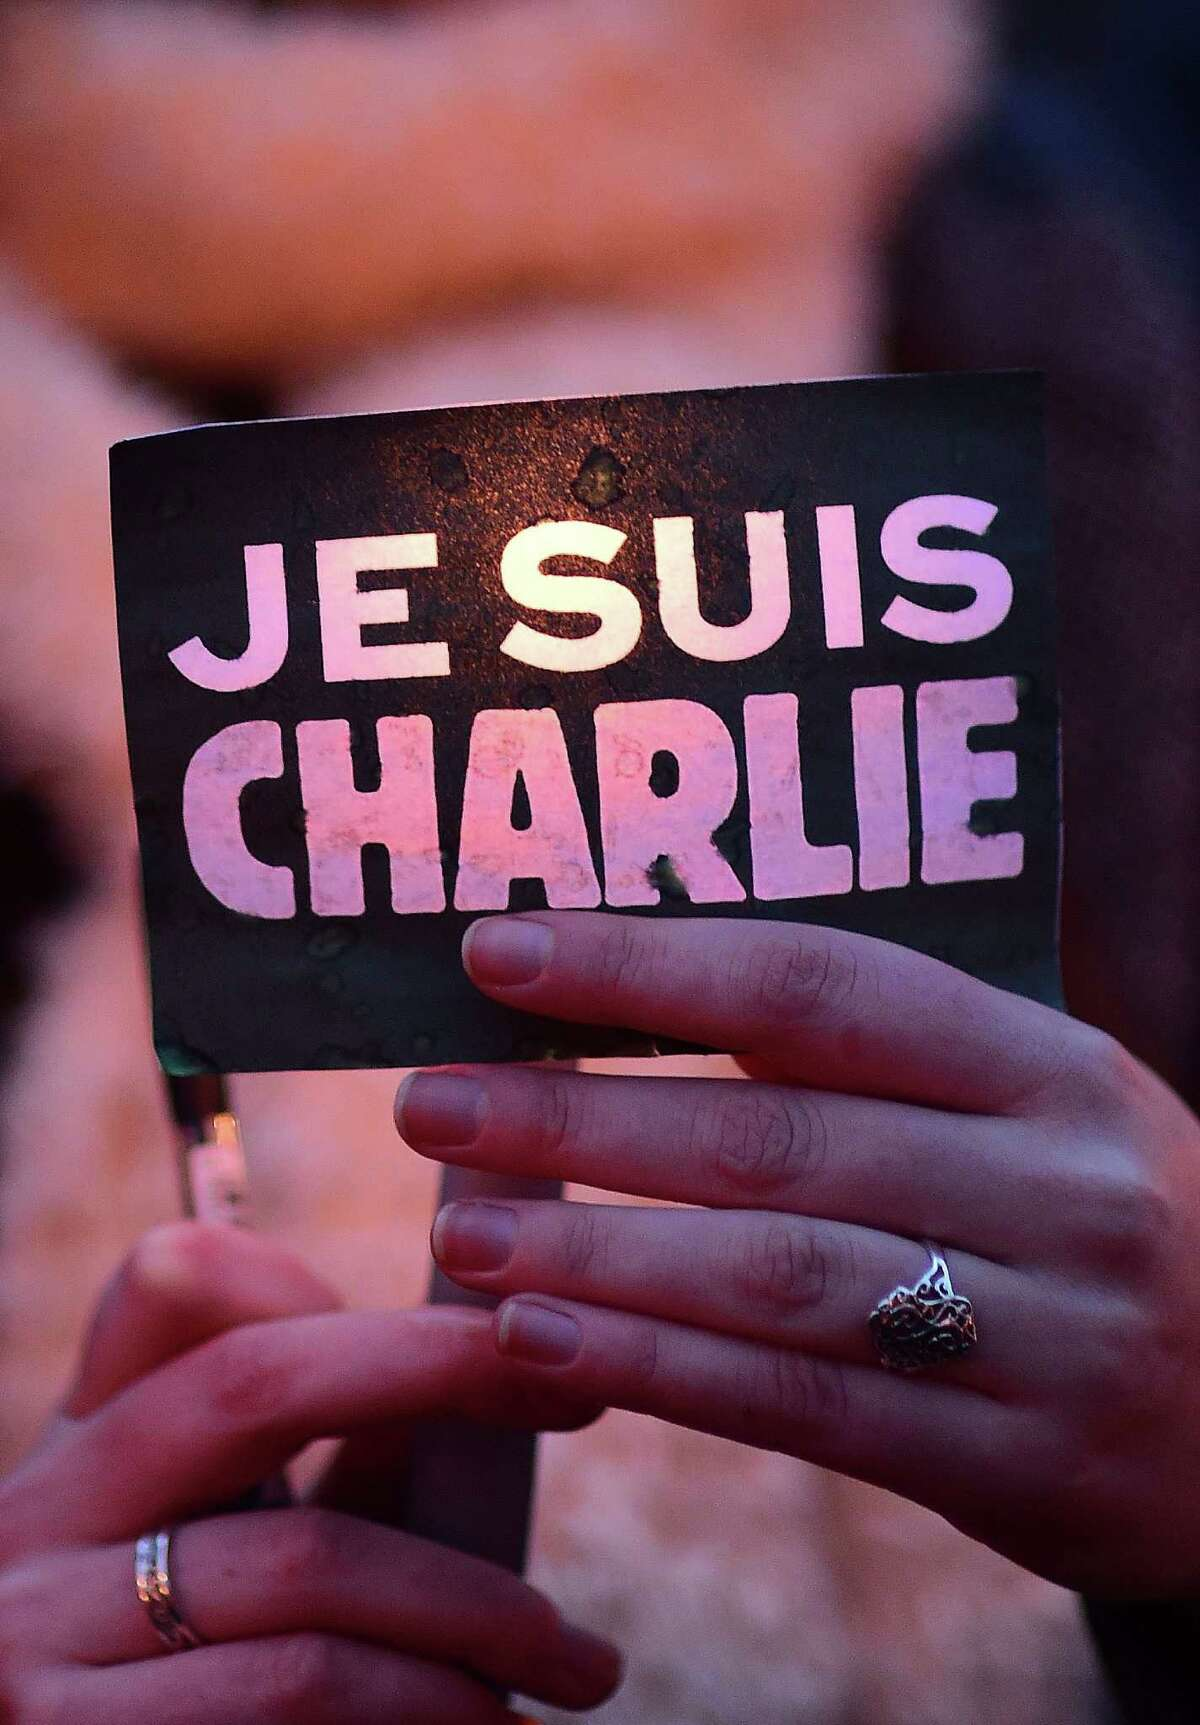 """A woman holds a sign reading """"Je suis Charlie"""" (I am Charlie) during a gathering in Brussels on January 9, 2015 to pay tribute to the victims of a deadly attack on the Paris headquarters of French weekly Charlie Hebdo. Elite commandos units killed the two suspects in the Charlie Hebdo massacre during a simultaneous assault on the building they were holed up in and on a Paris Jewish supermarket, freeing hostages at both sites. AFP PHOTO / EMMANUEL DUNANDEMMANUEL DUNAND/AFP/Getty Images"""